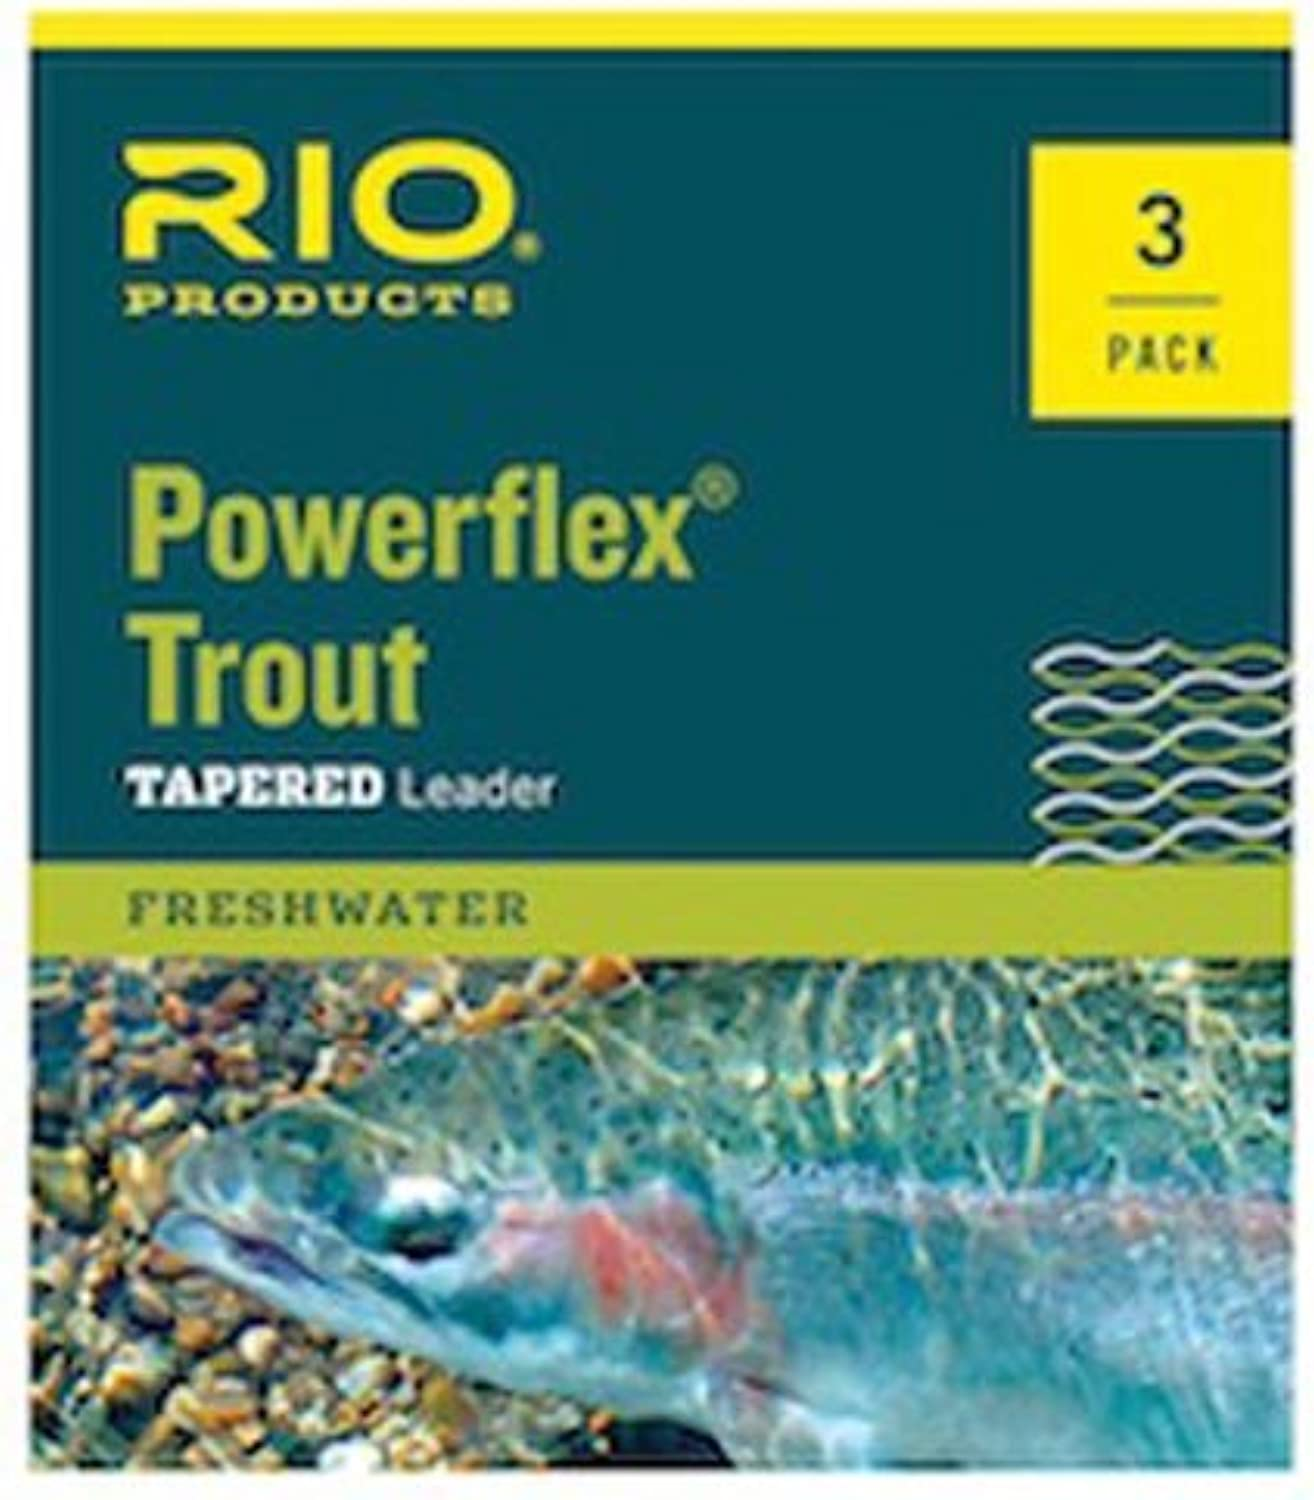 Rio Powerflex Trout Fly Fishing Leaders, 9 Foot  6 Pack